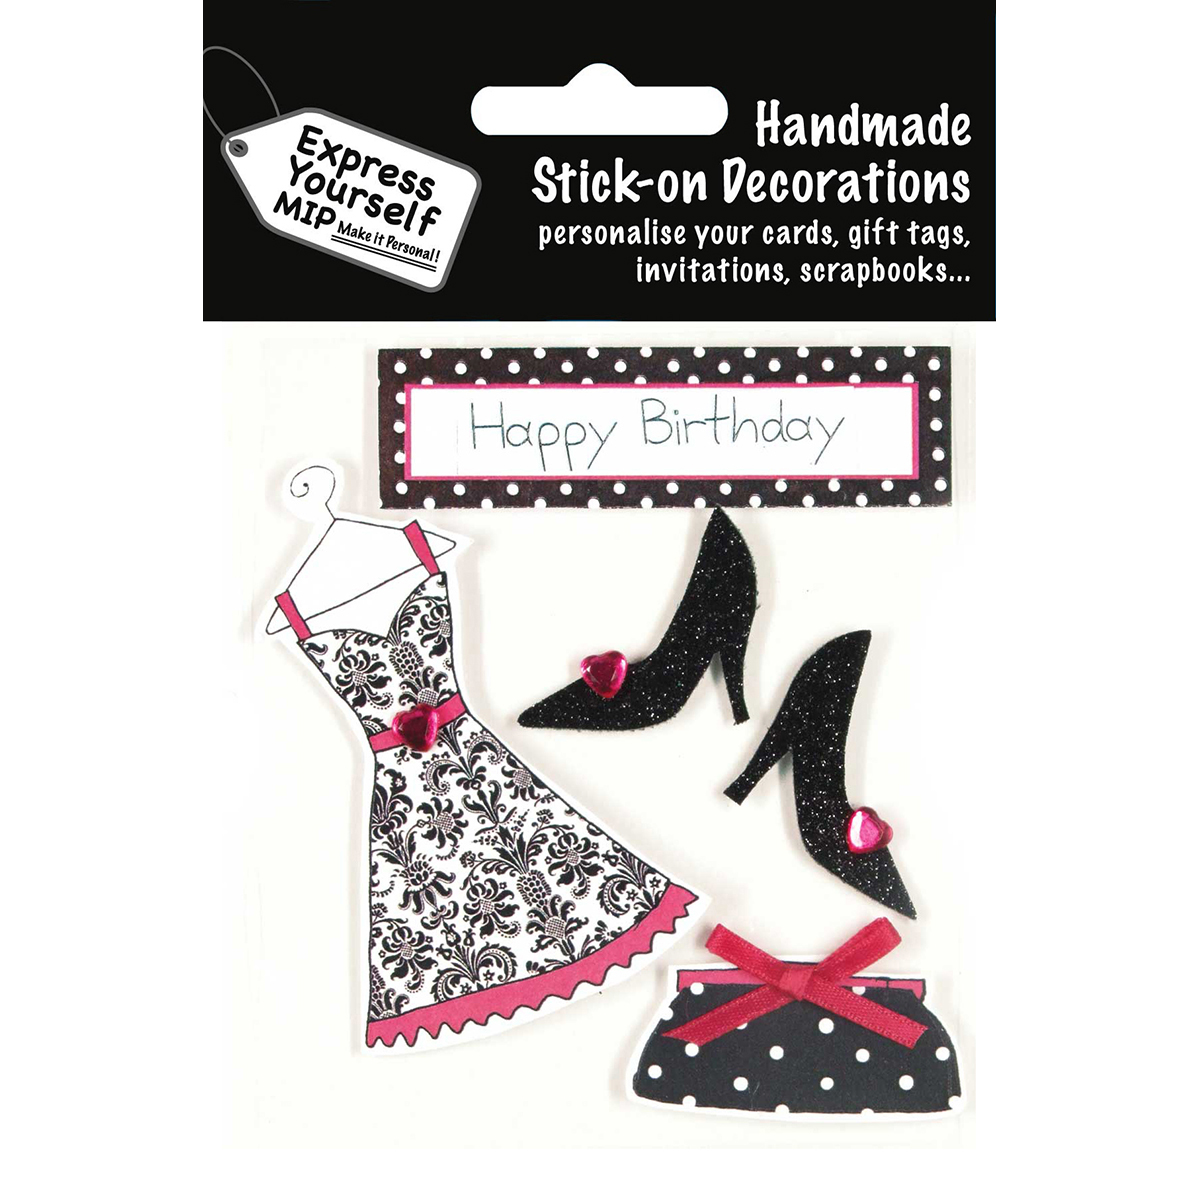 Express Yourself MIP 3D Stickers-Fashion Items - Black & Pink